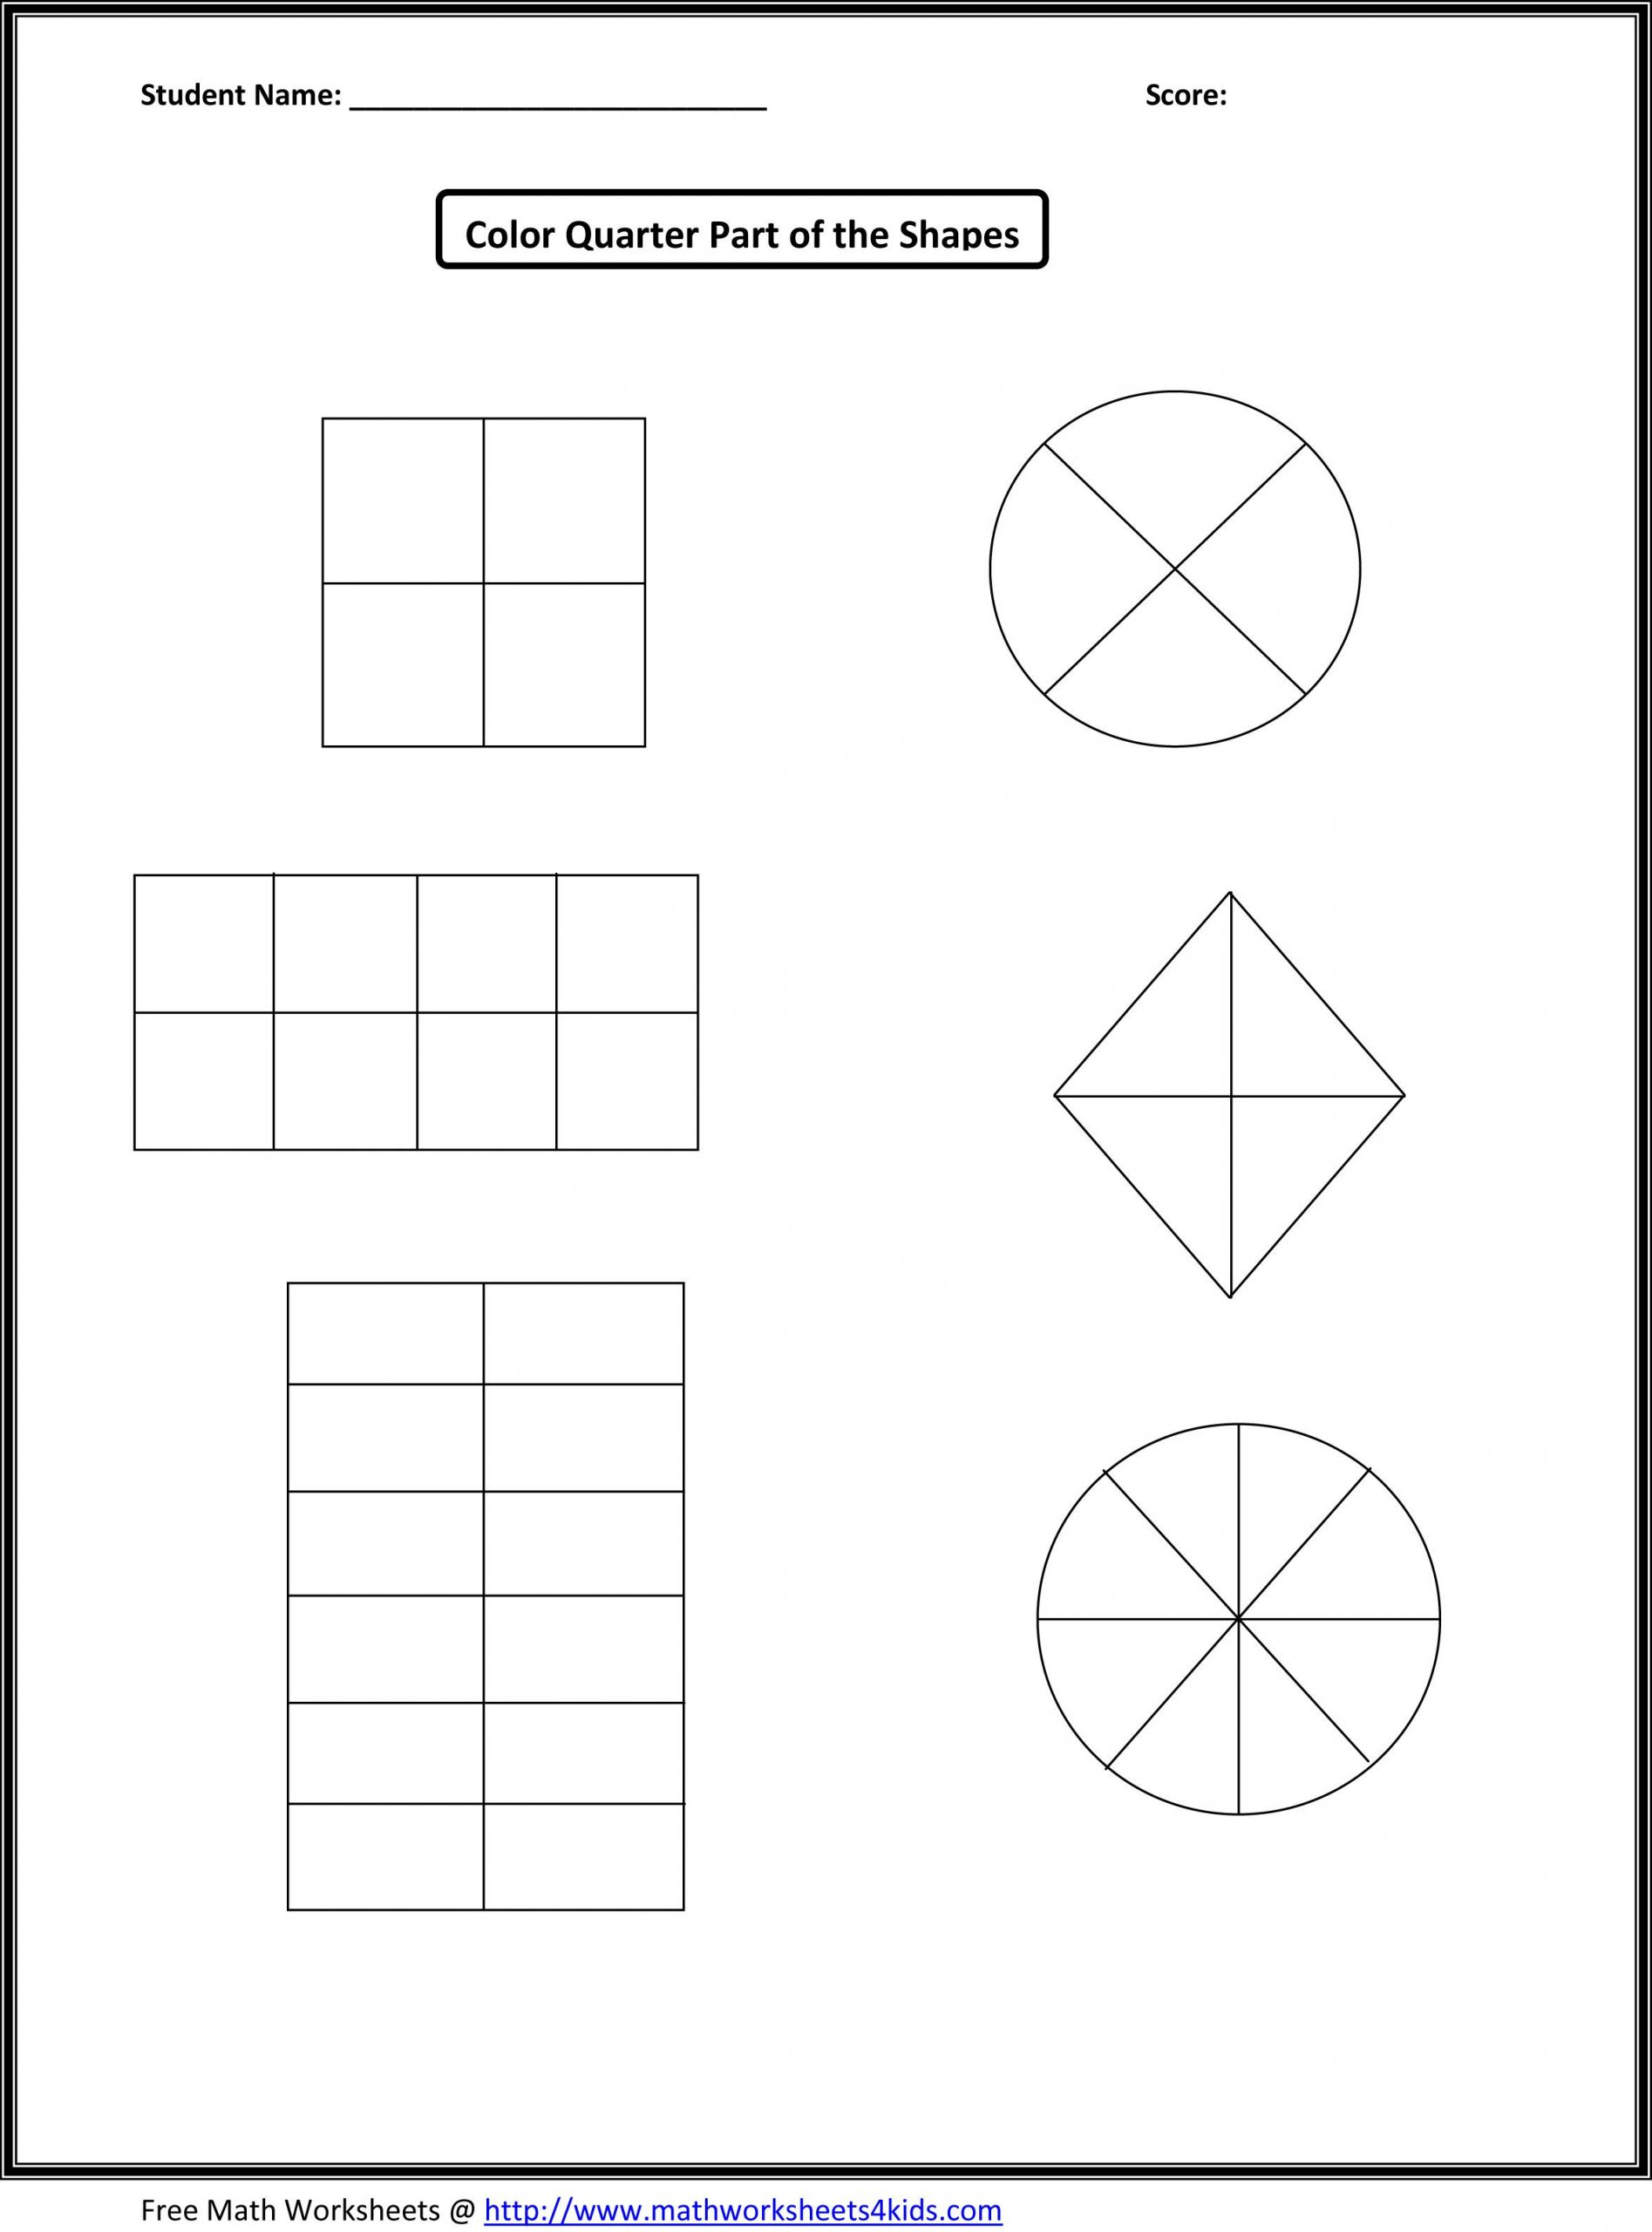 Fraction Worksheets for 1st Grade This Would Work for First Grade Fraction Number Sense